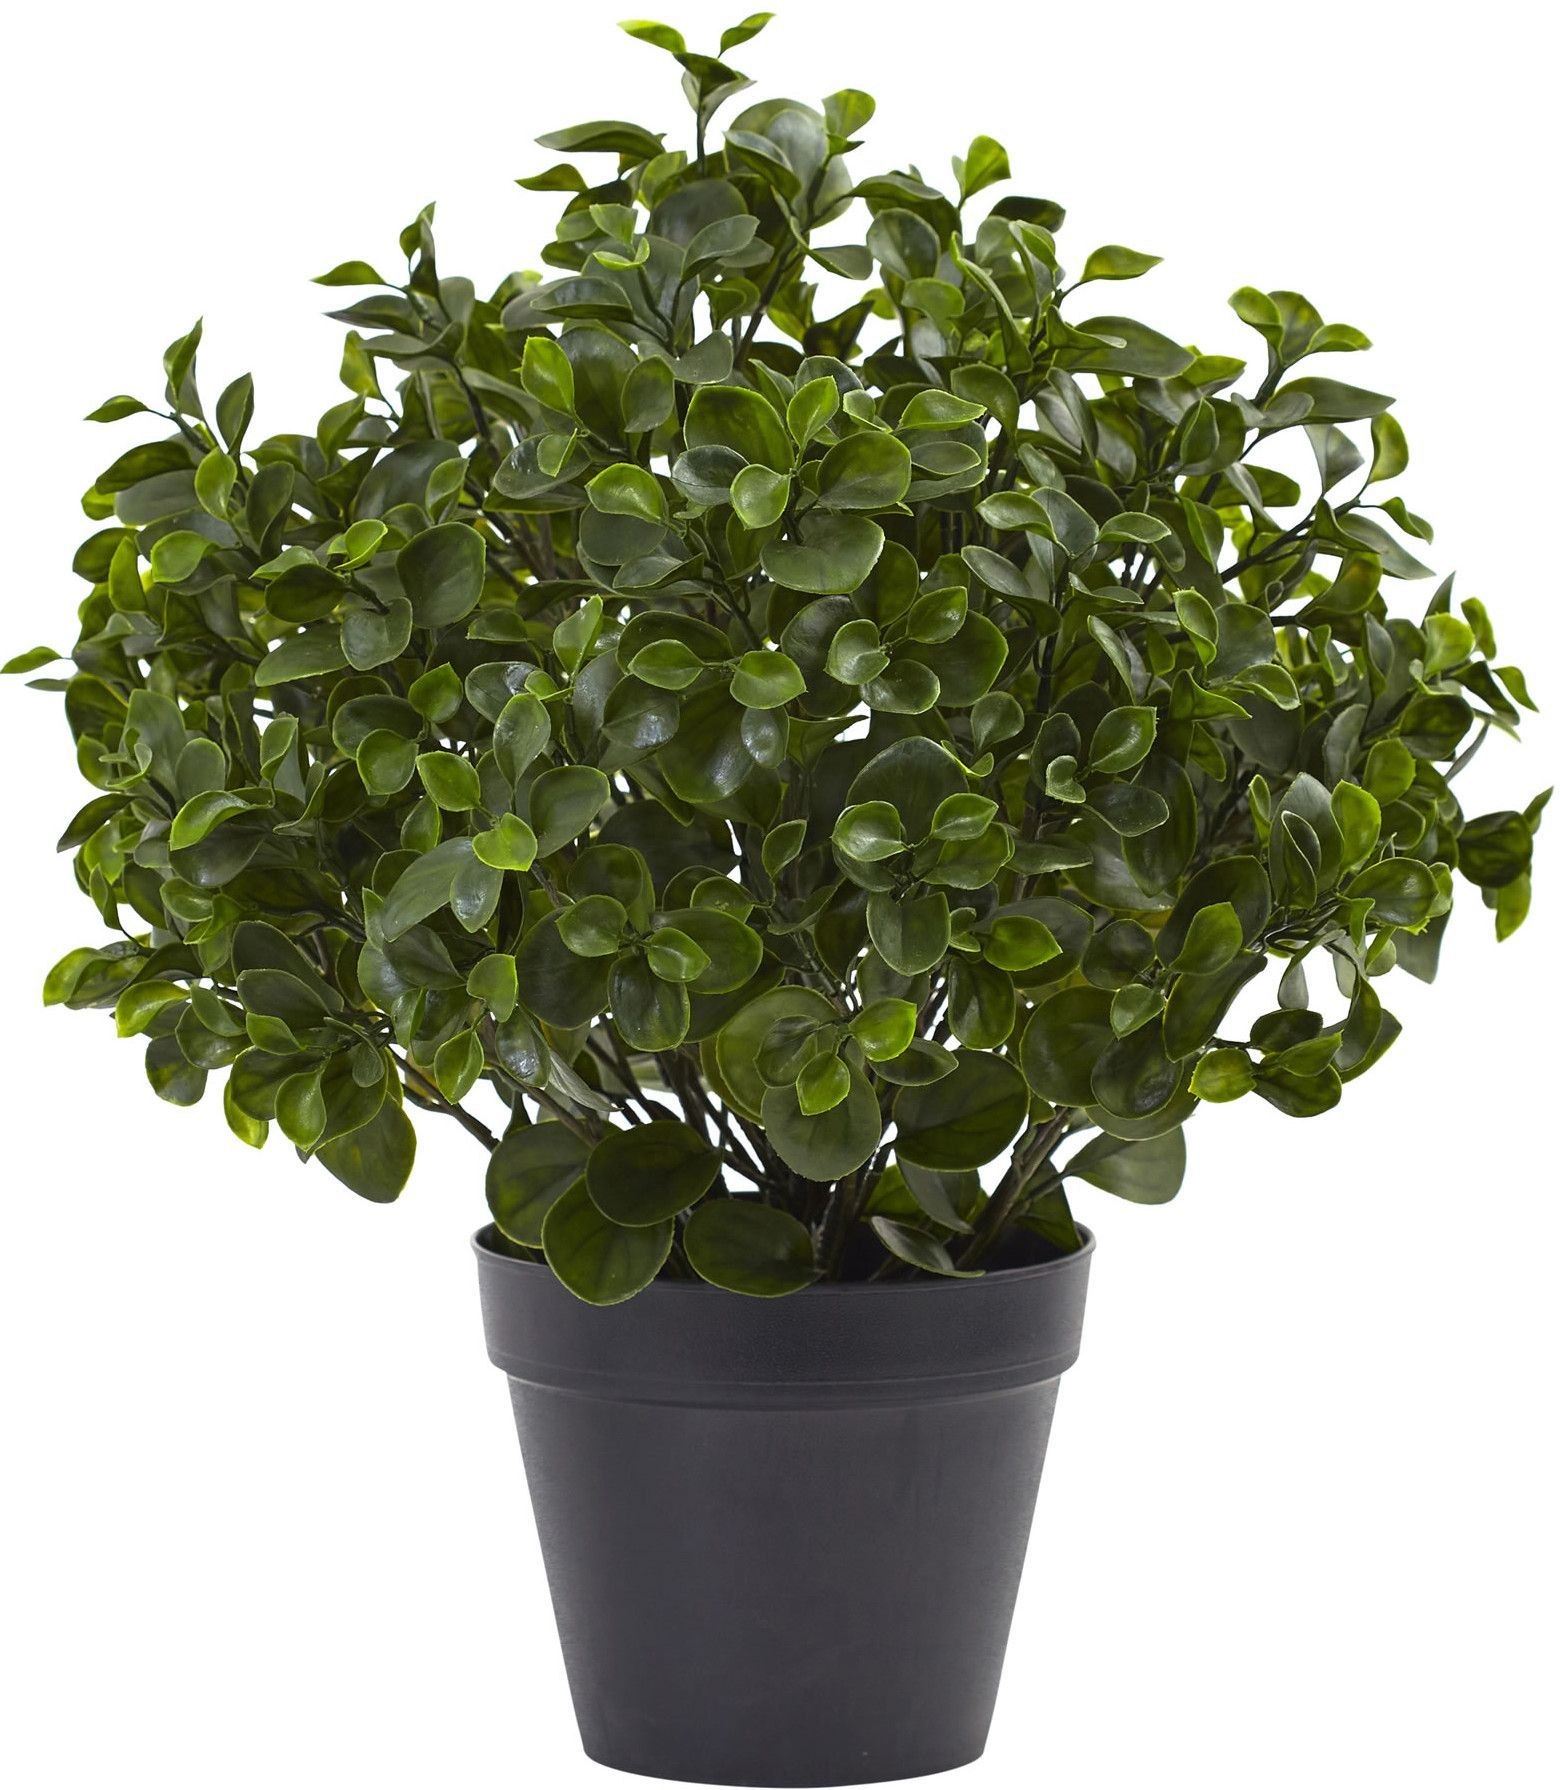 Peperomia desktop plant in pot tops pots and plants